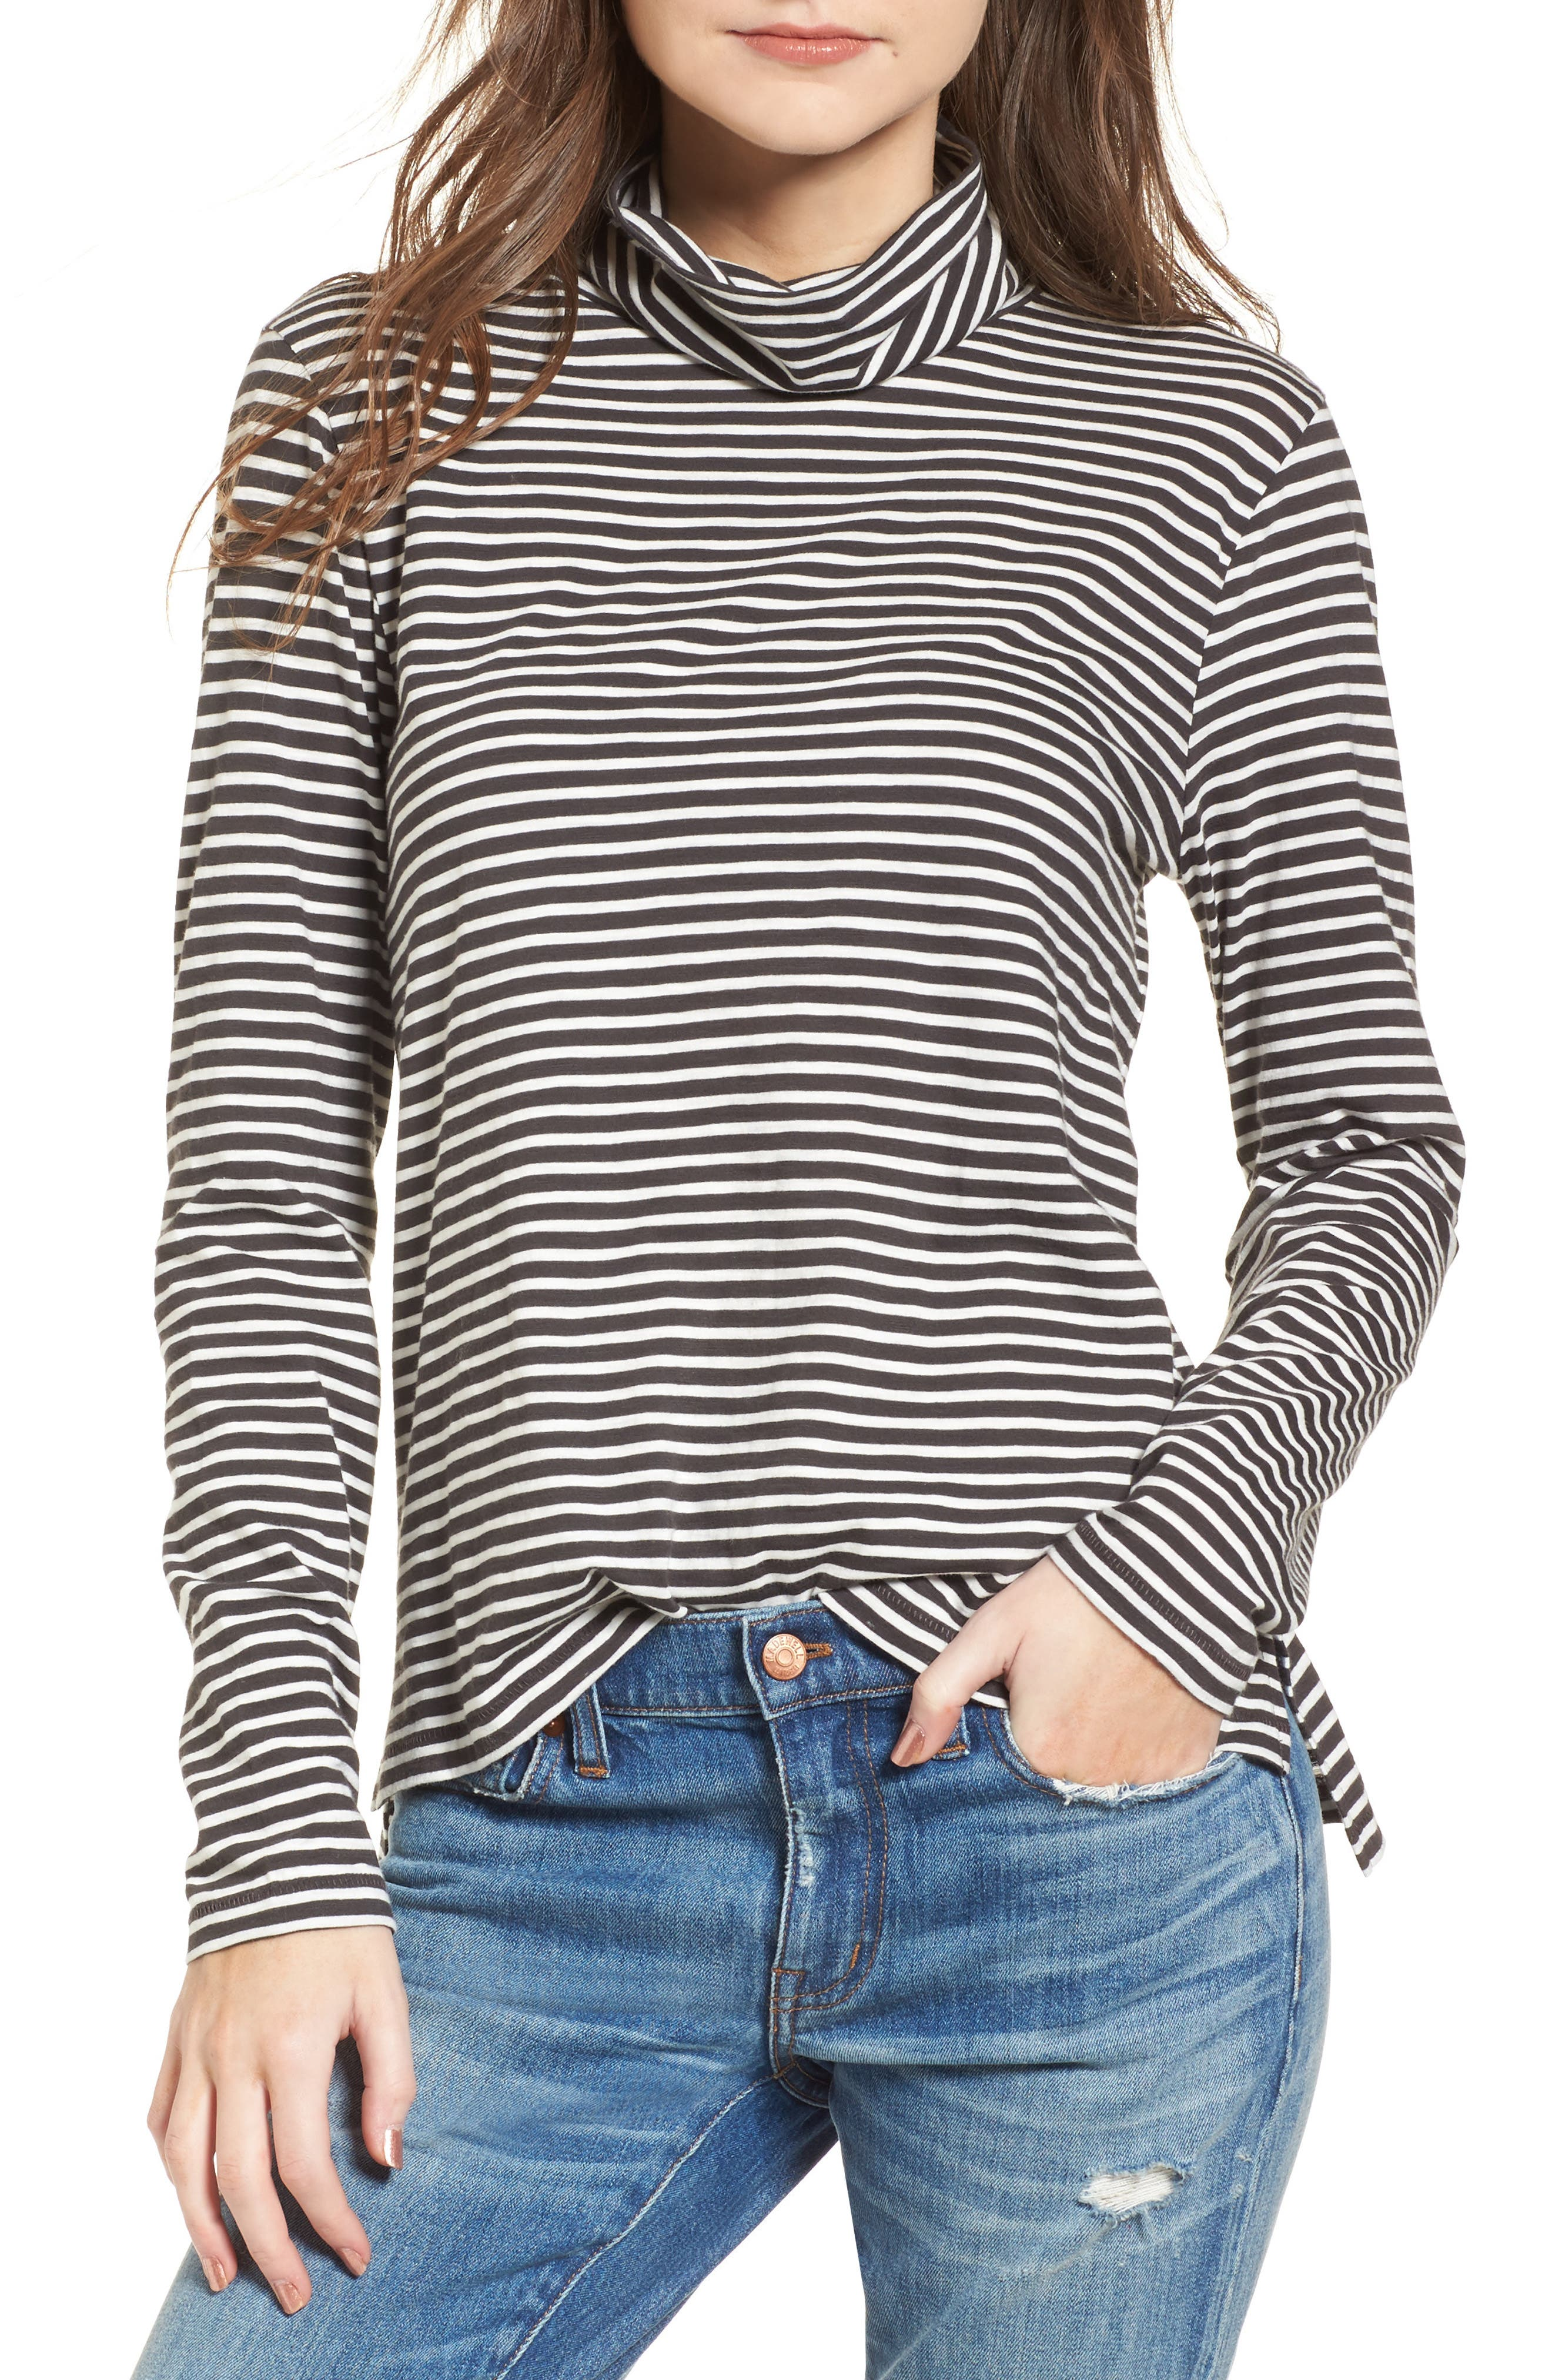 MADEWELL Whisper Cotton Turtleneck Top, Main, color, 021